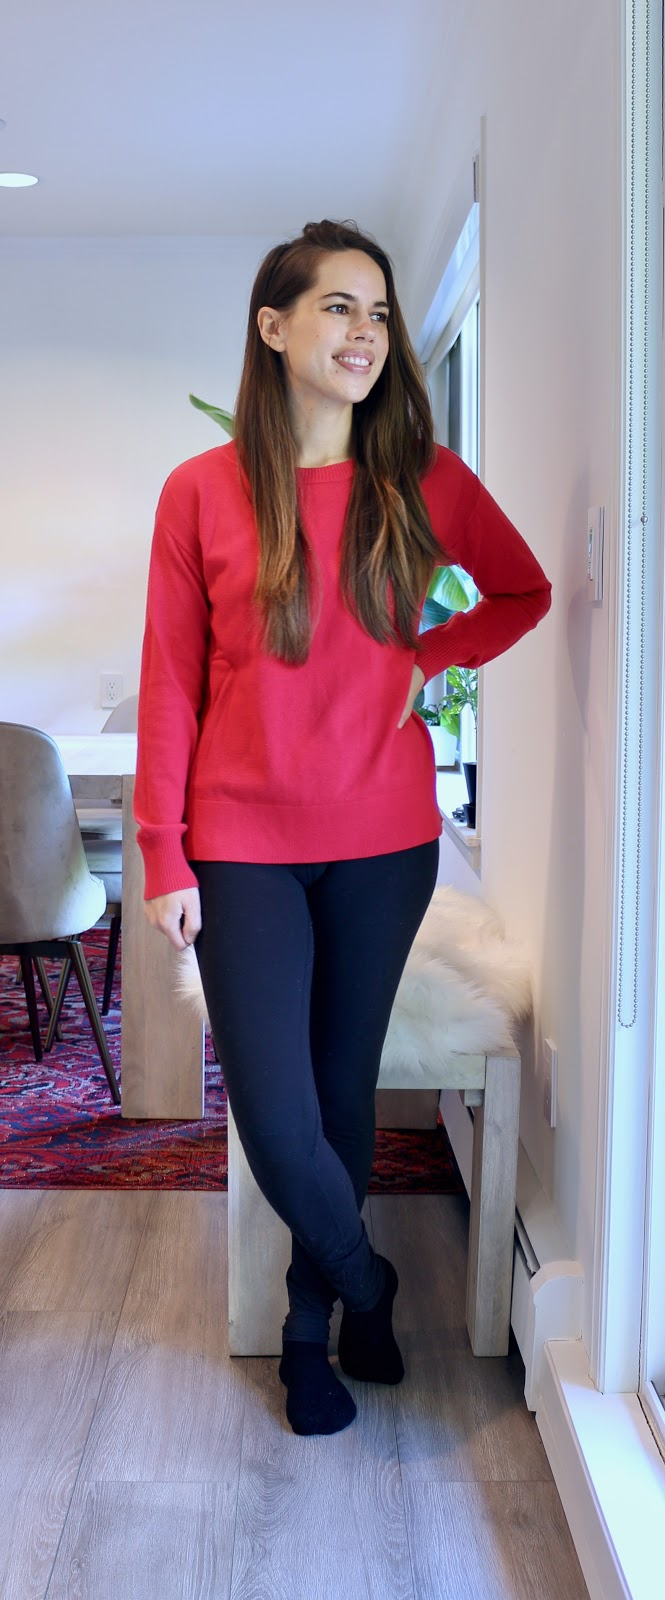 Jules in Flats - Red Sweater with Leggings (Easy Work from Home Outfit)